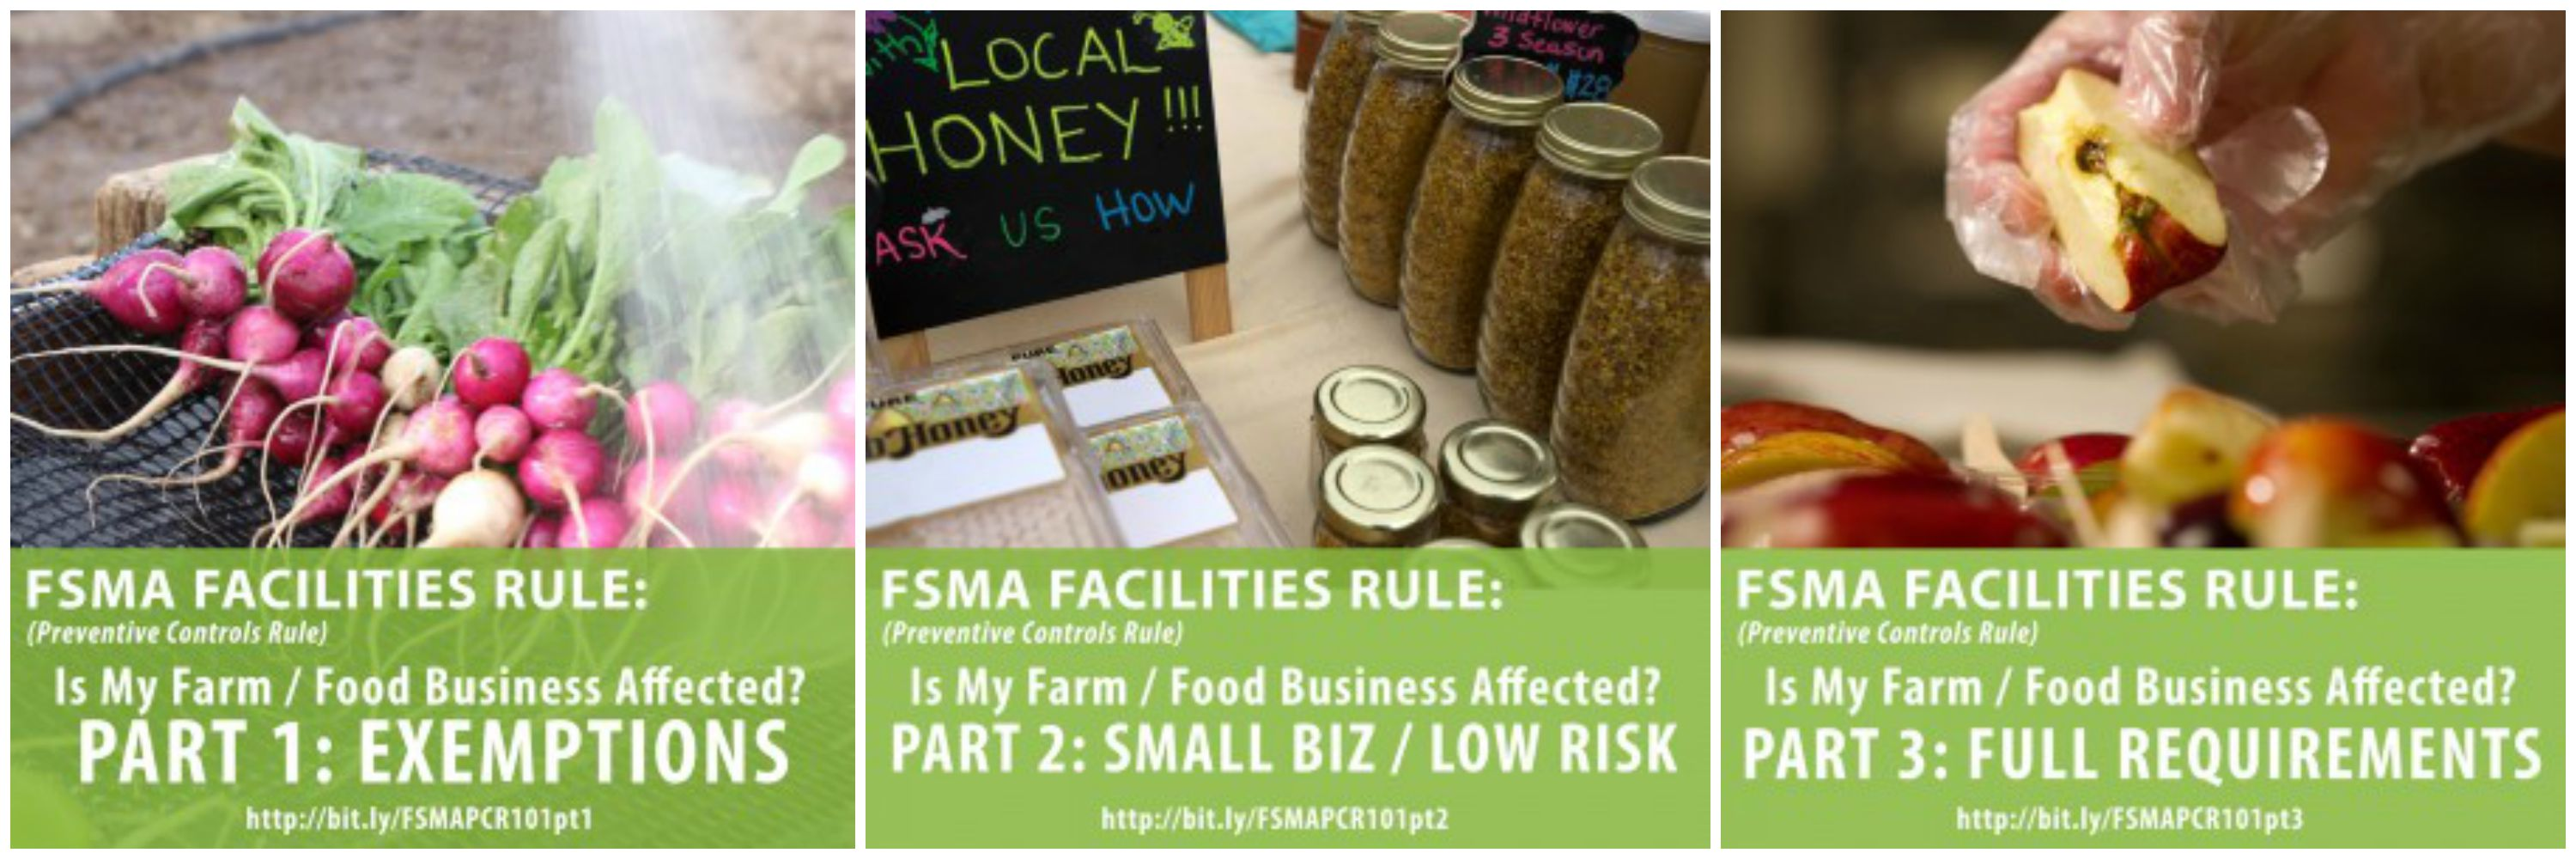 Who is Subject to FDA's New FSMA Food Facilities Rule?